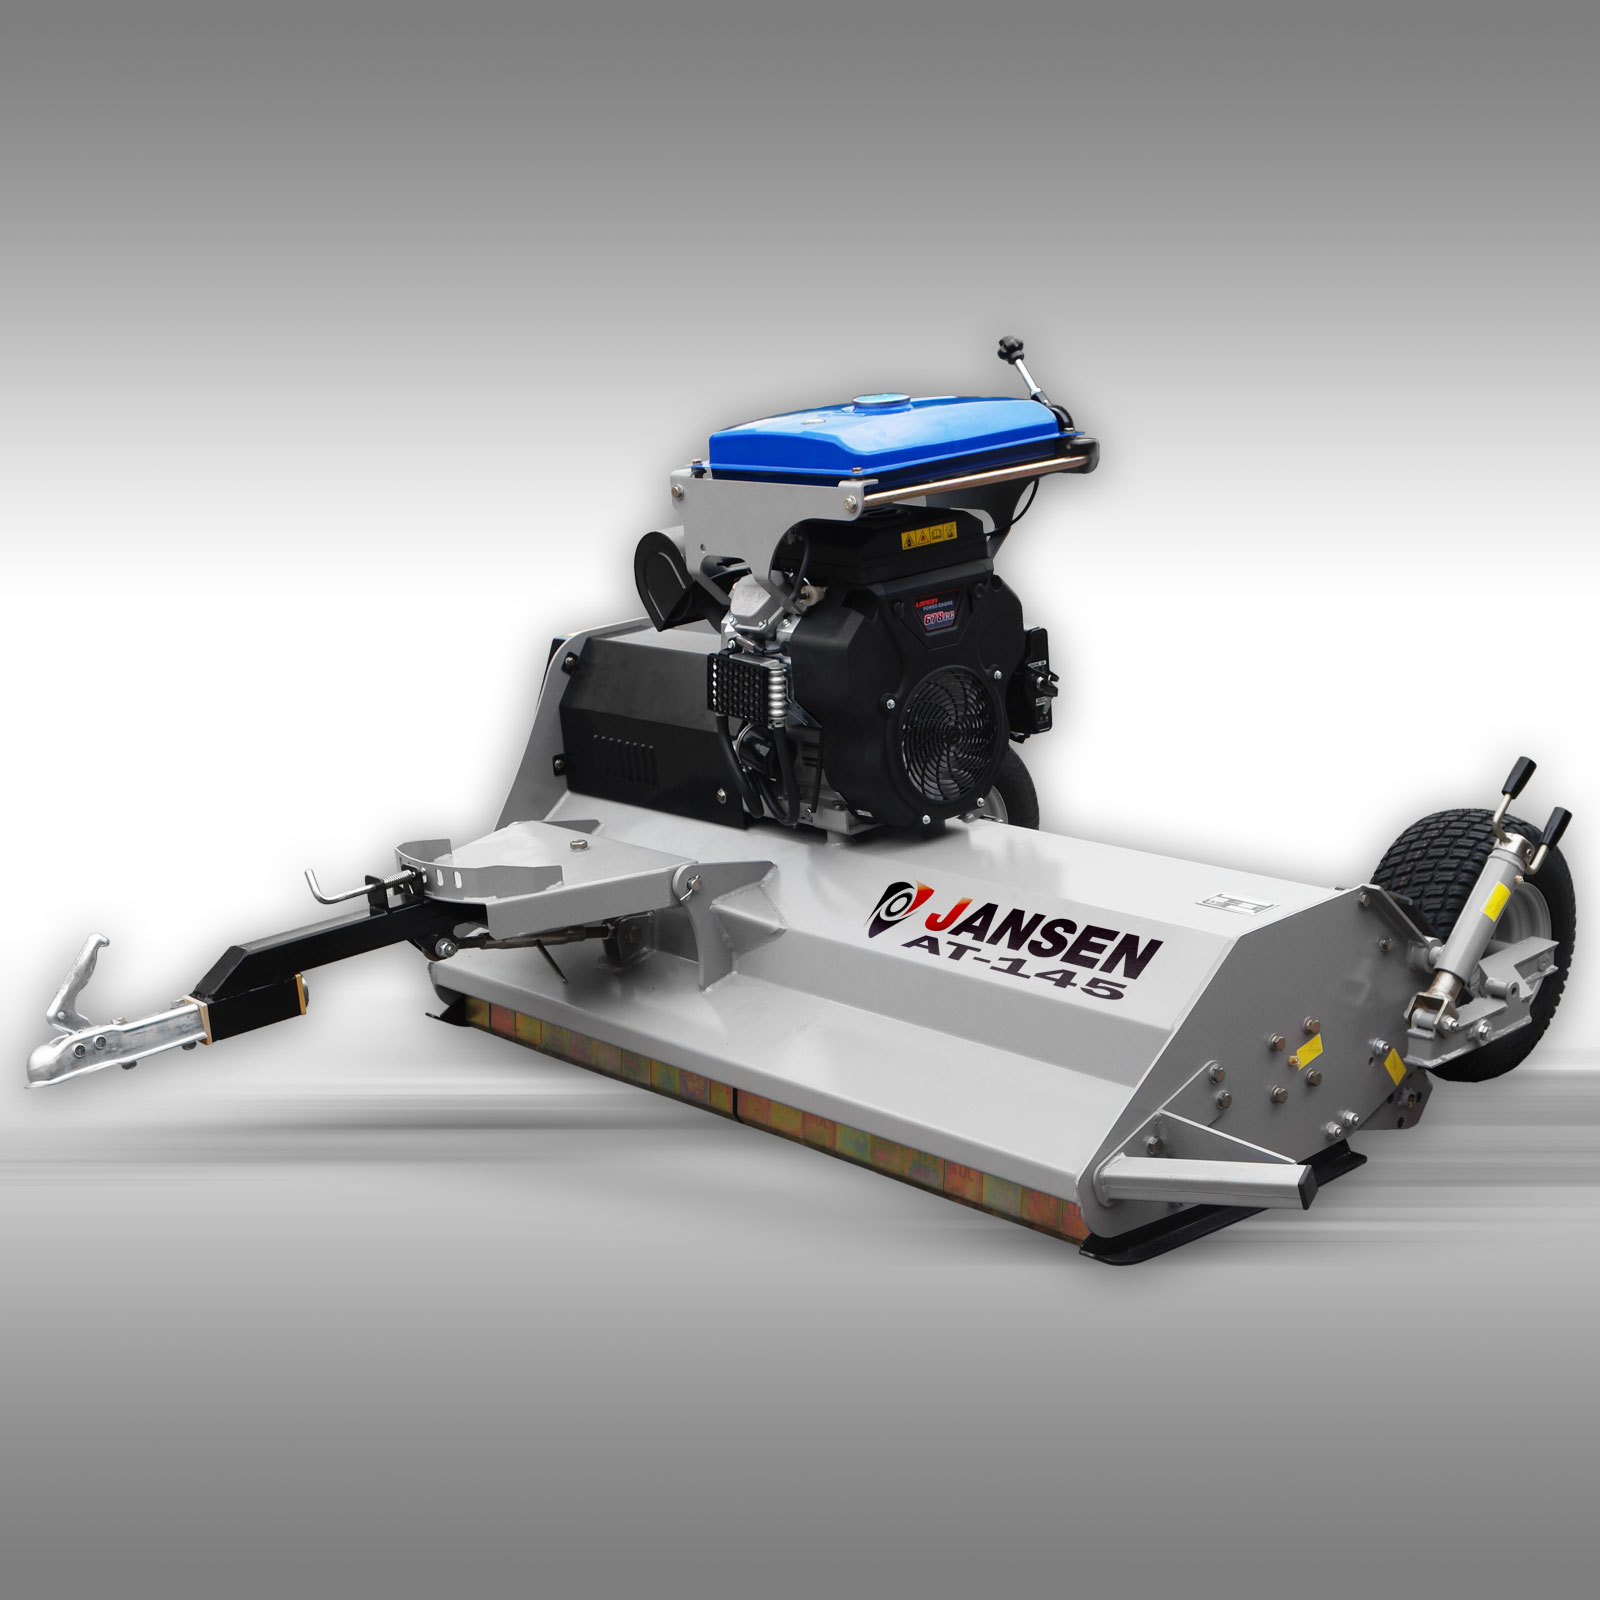 jansen-at-145-atv-flail-mower-with-22-hp-petrol-engine